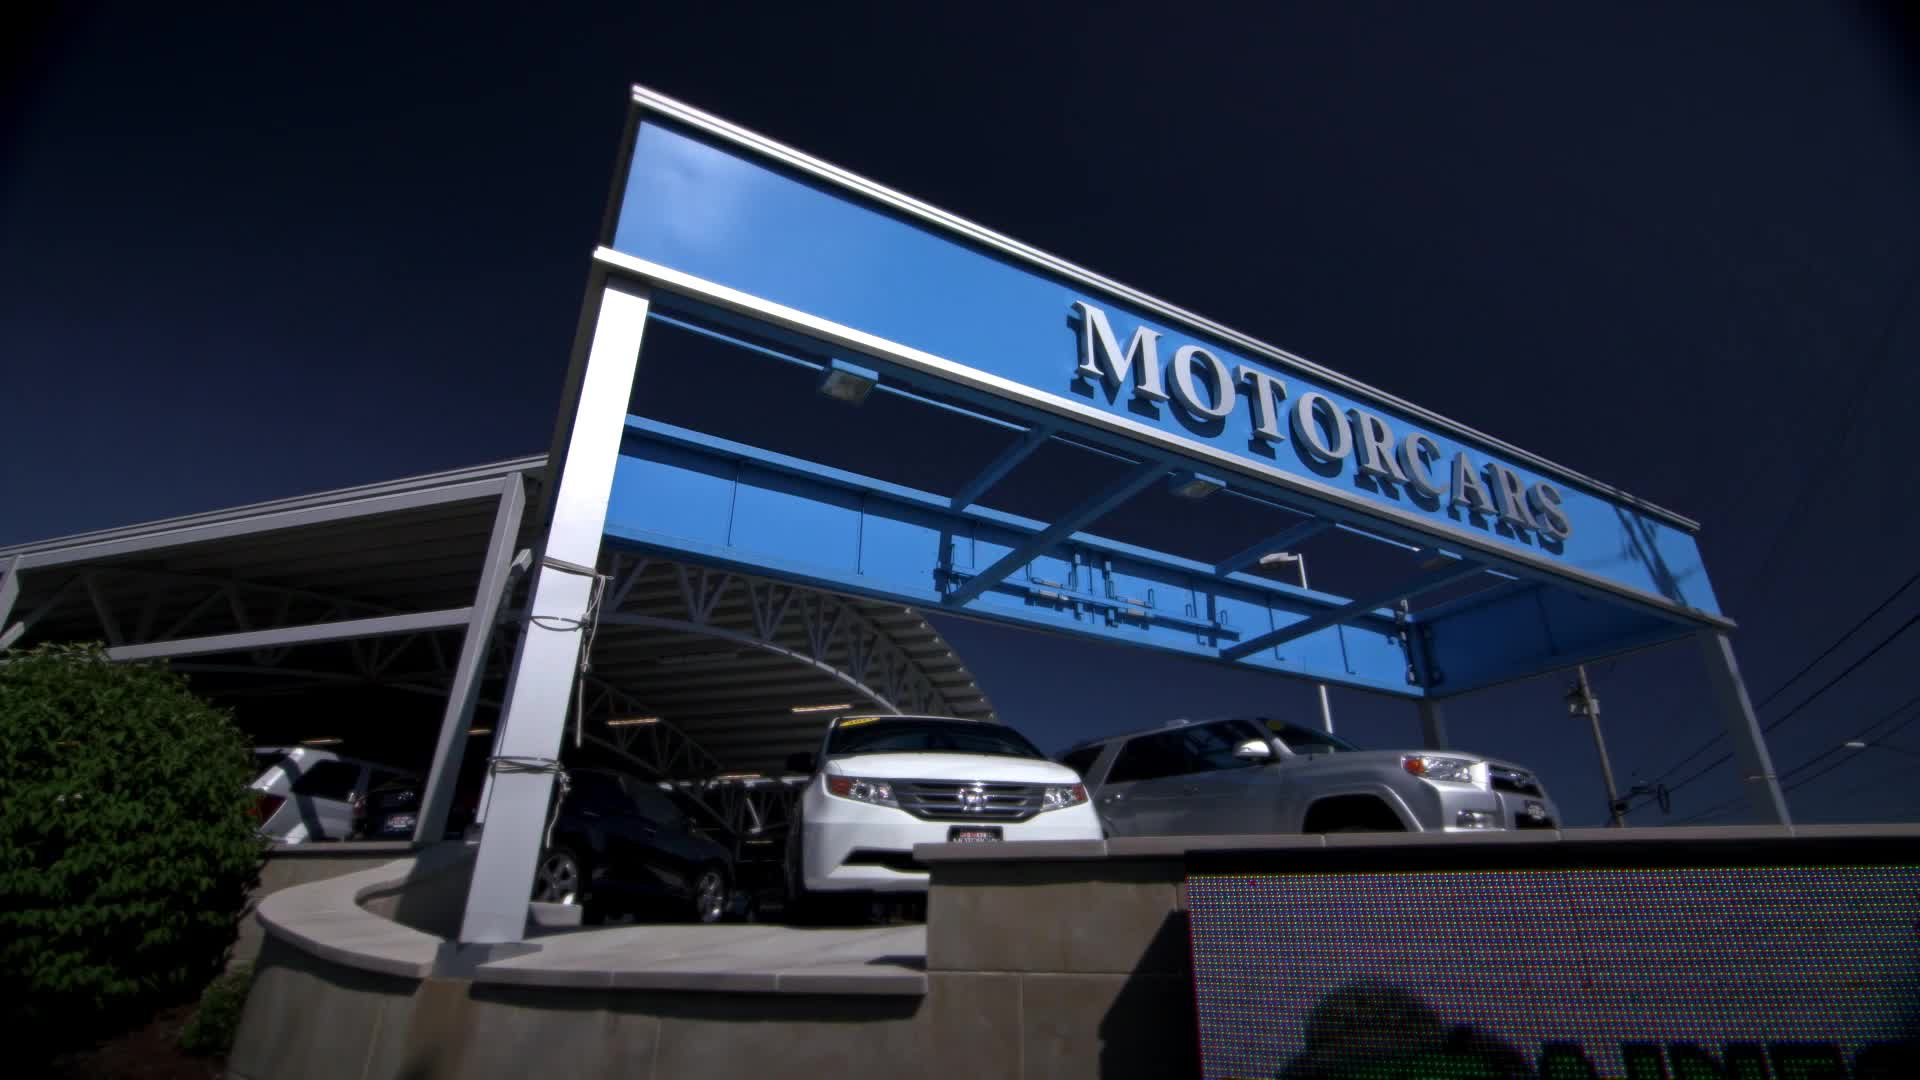 Motorcars Honda Named First Carbon Neutral Car Dealership in the World